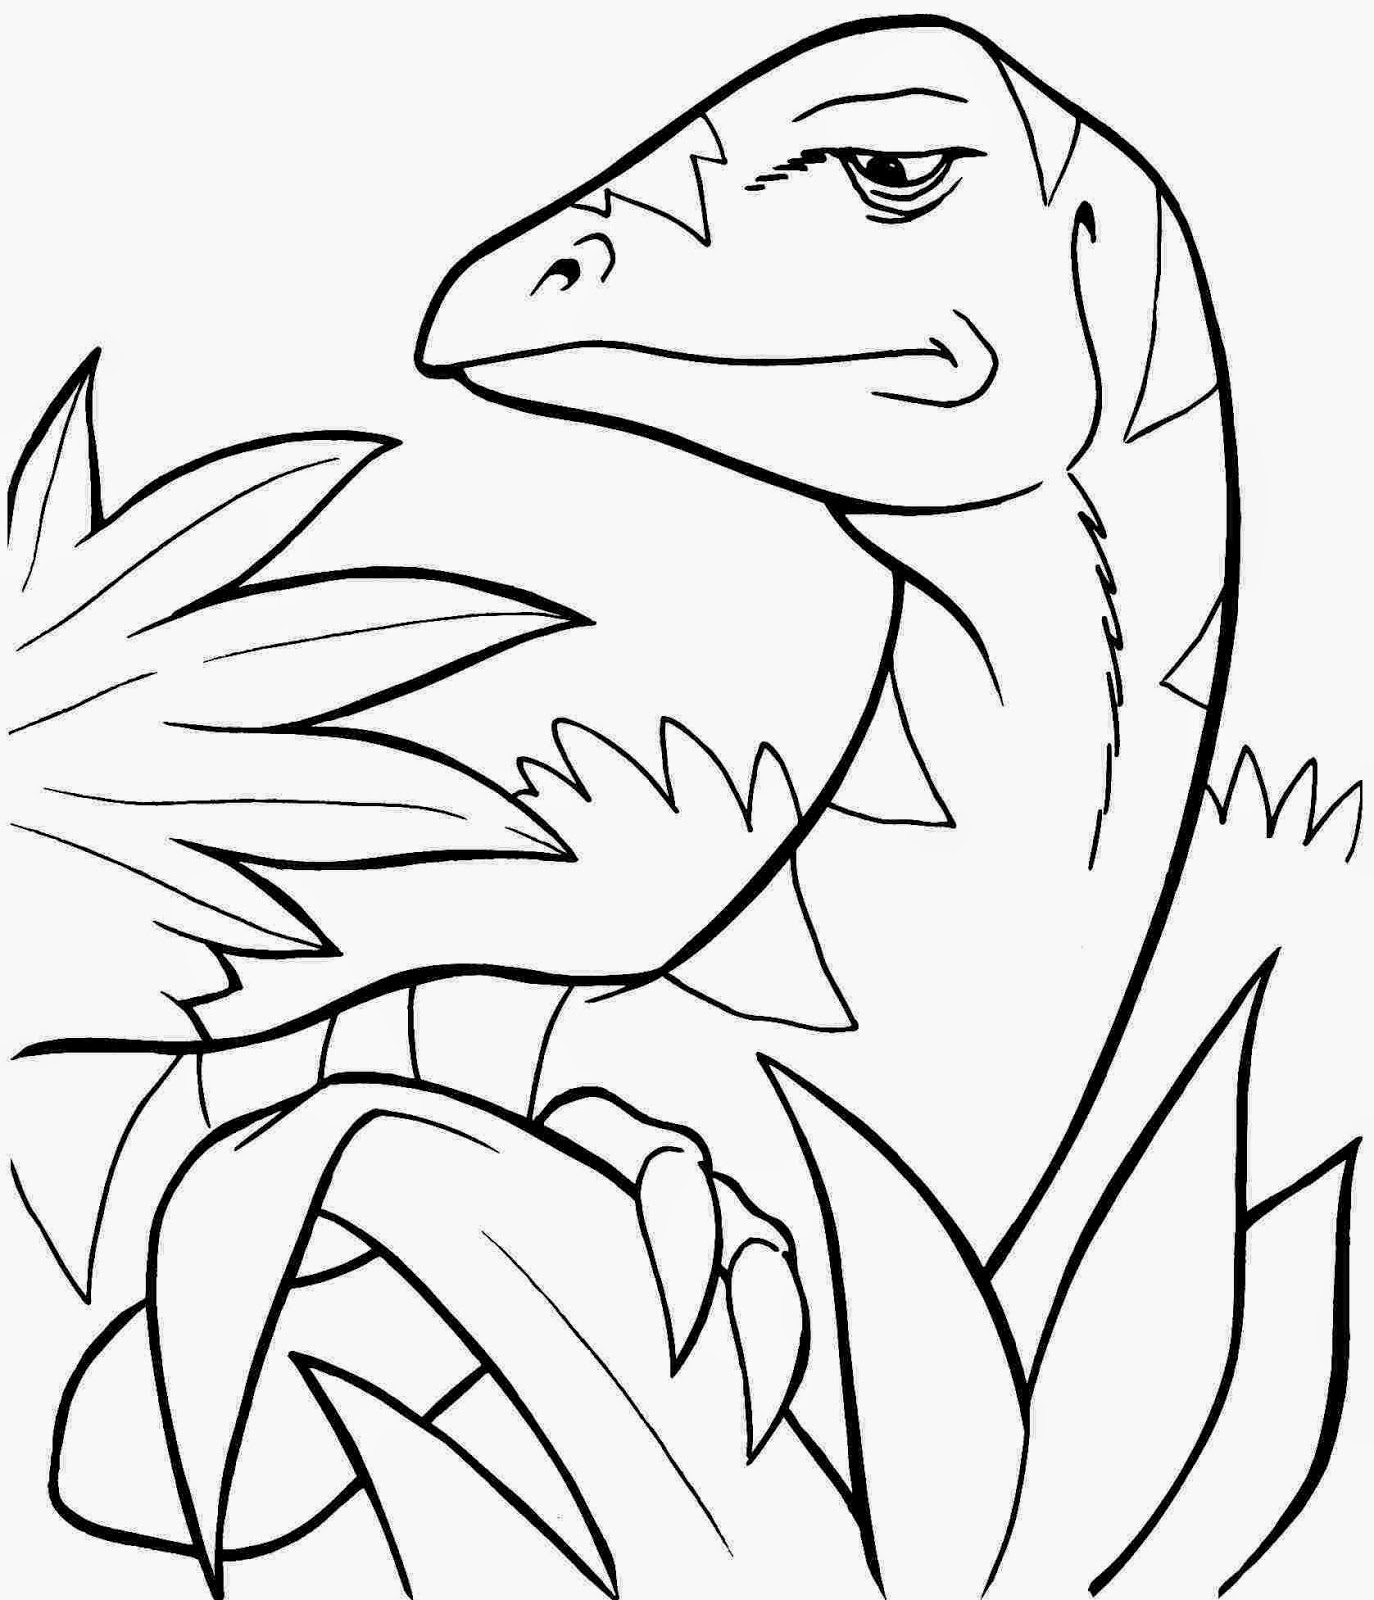 dino coloring pages printable dinosaur coloring pages for kids cool2bkids pages dino coloring